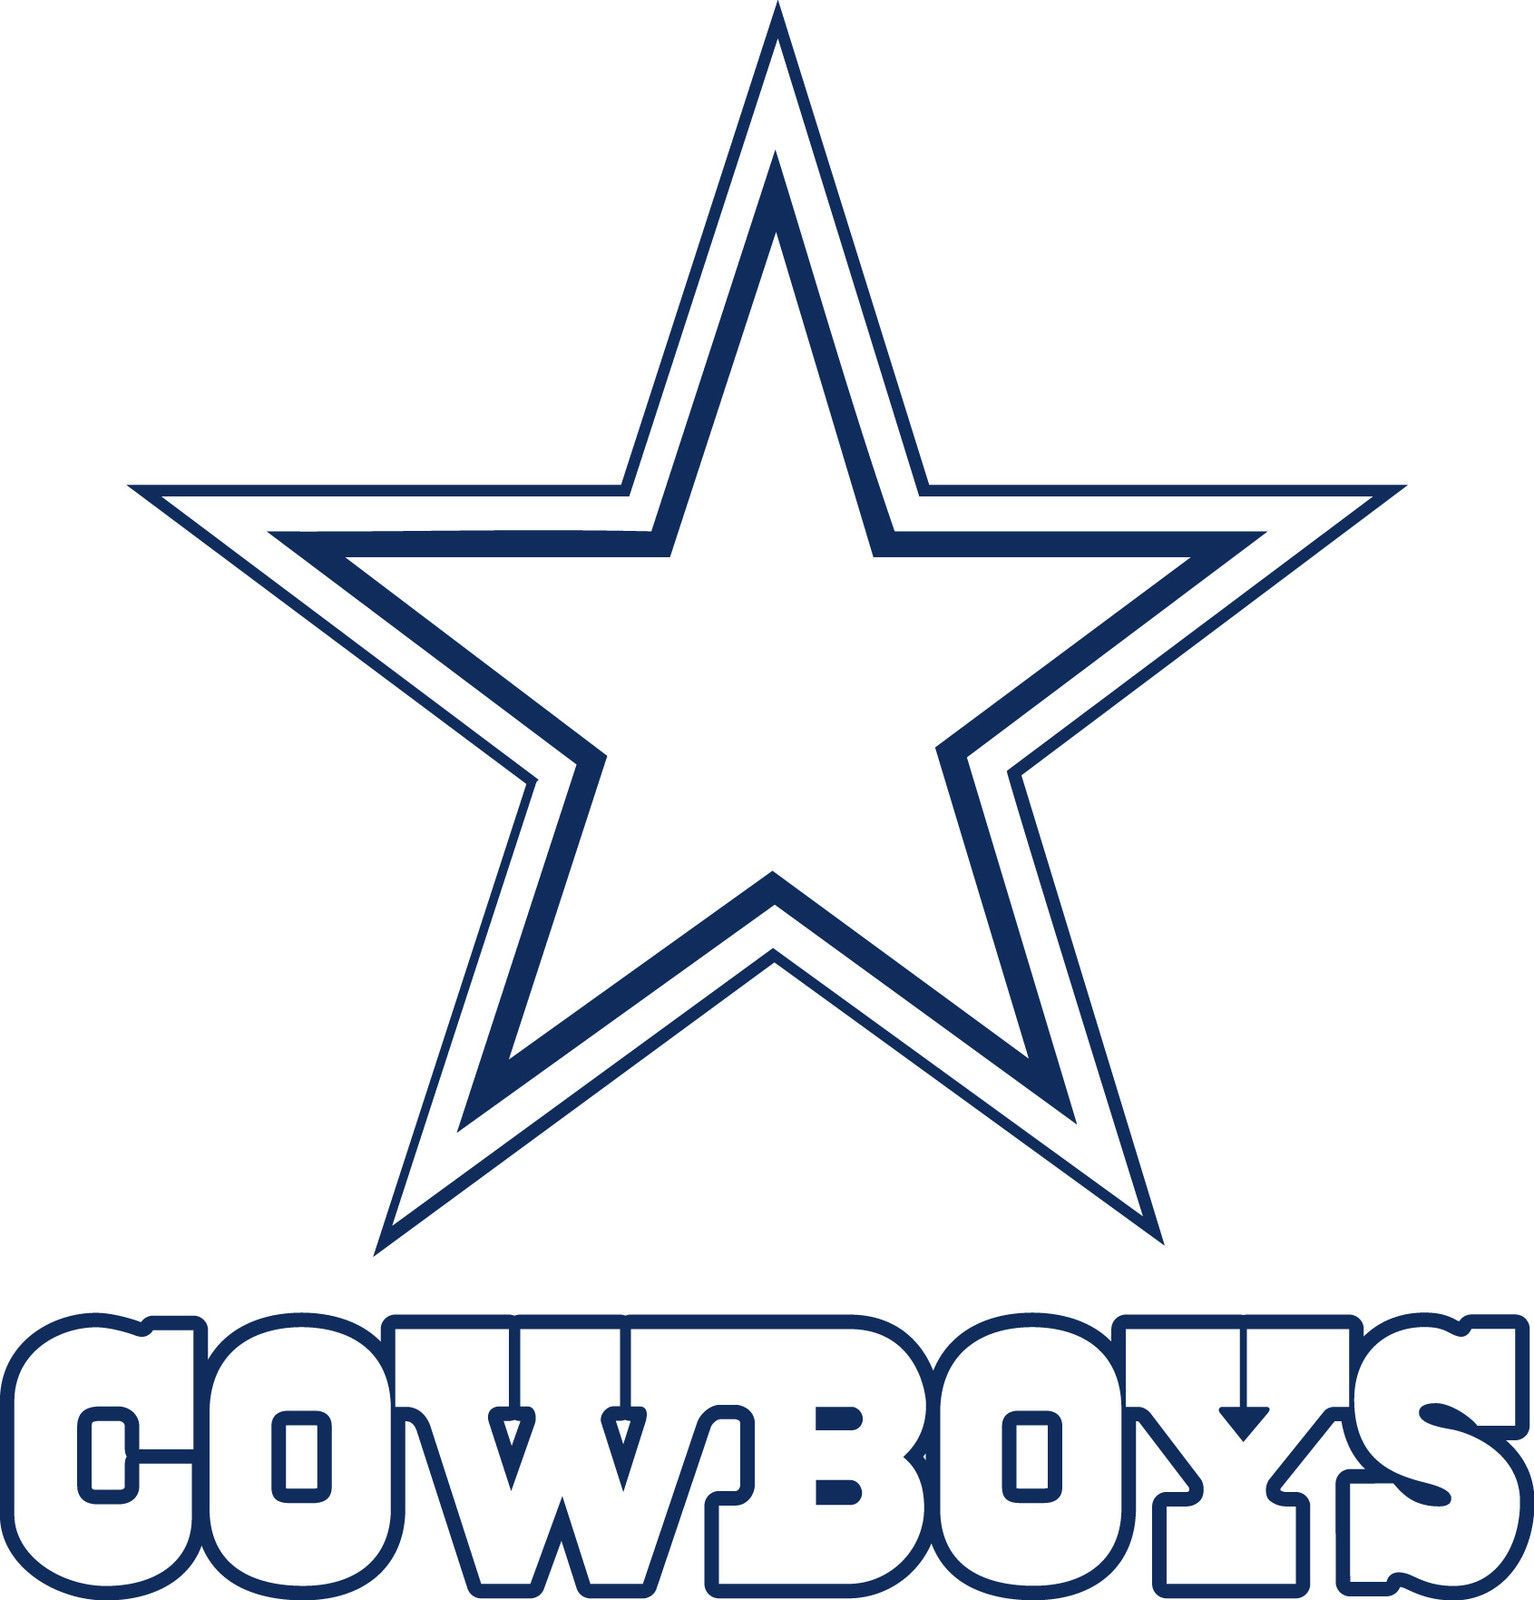 Dallas cowboys clipart text. Logo drawings star lo